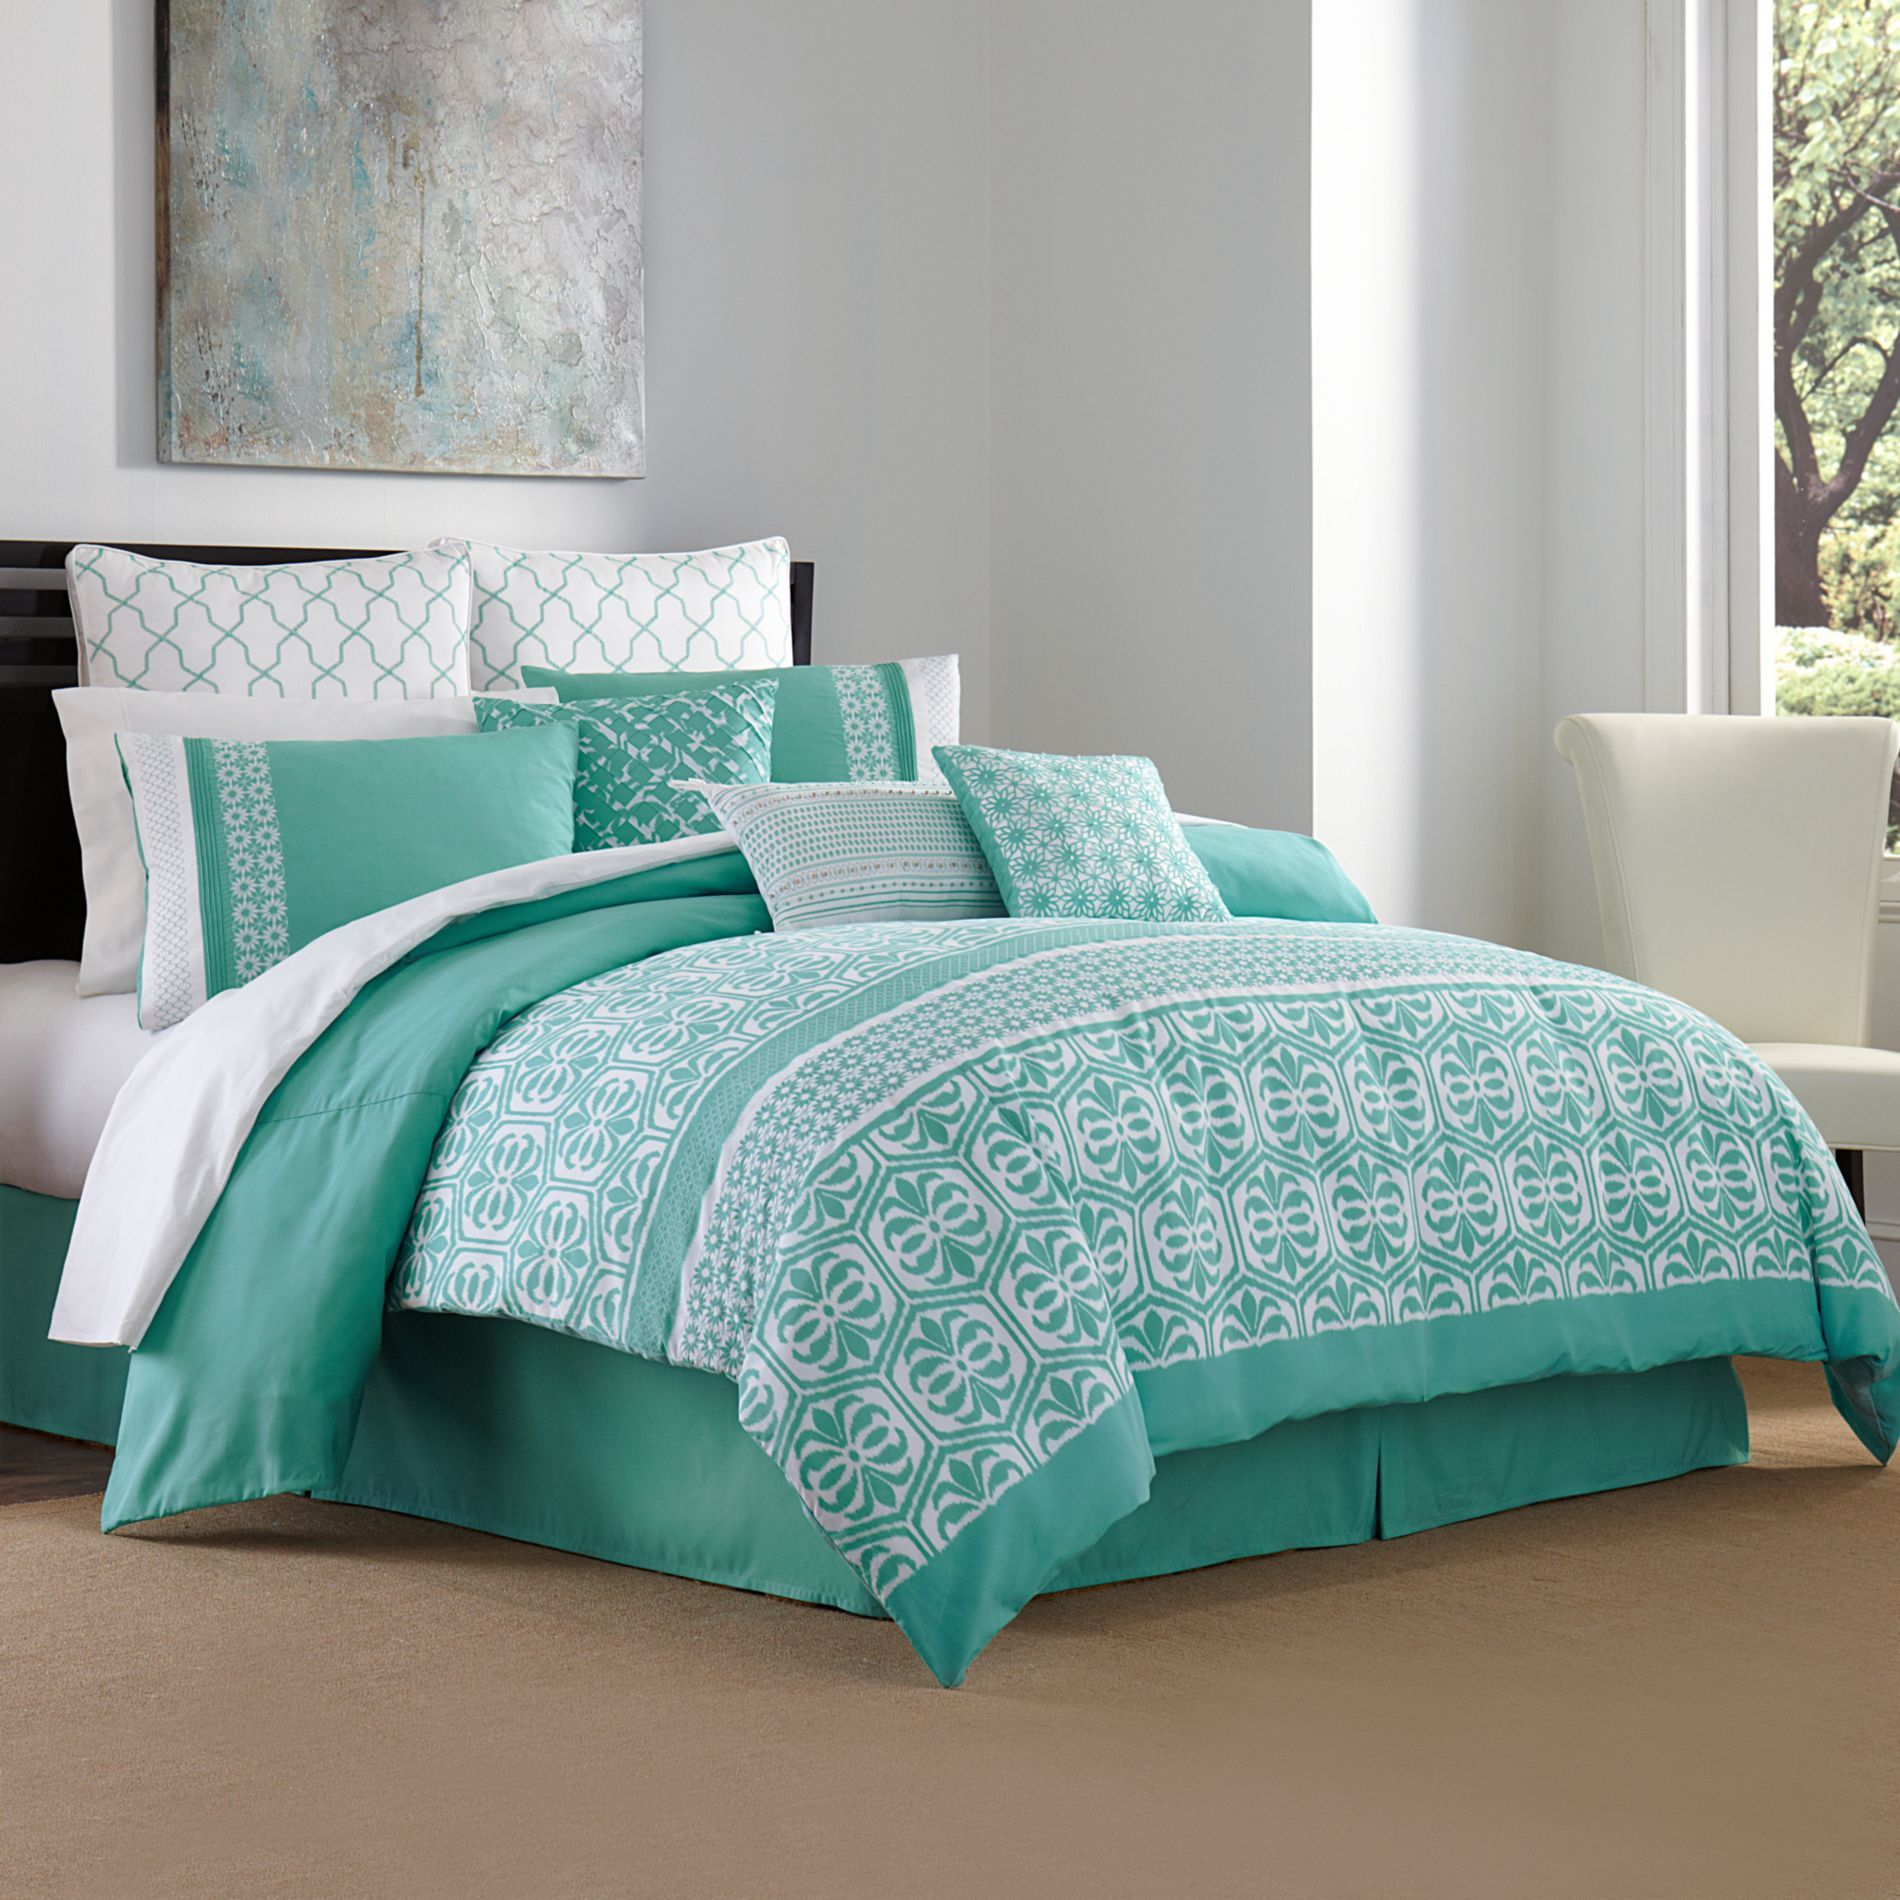 maya 3 4 piece comforter set bedbathandbeyond com bedding